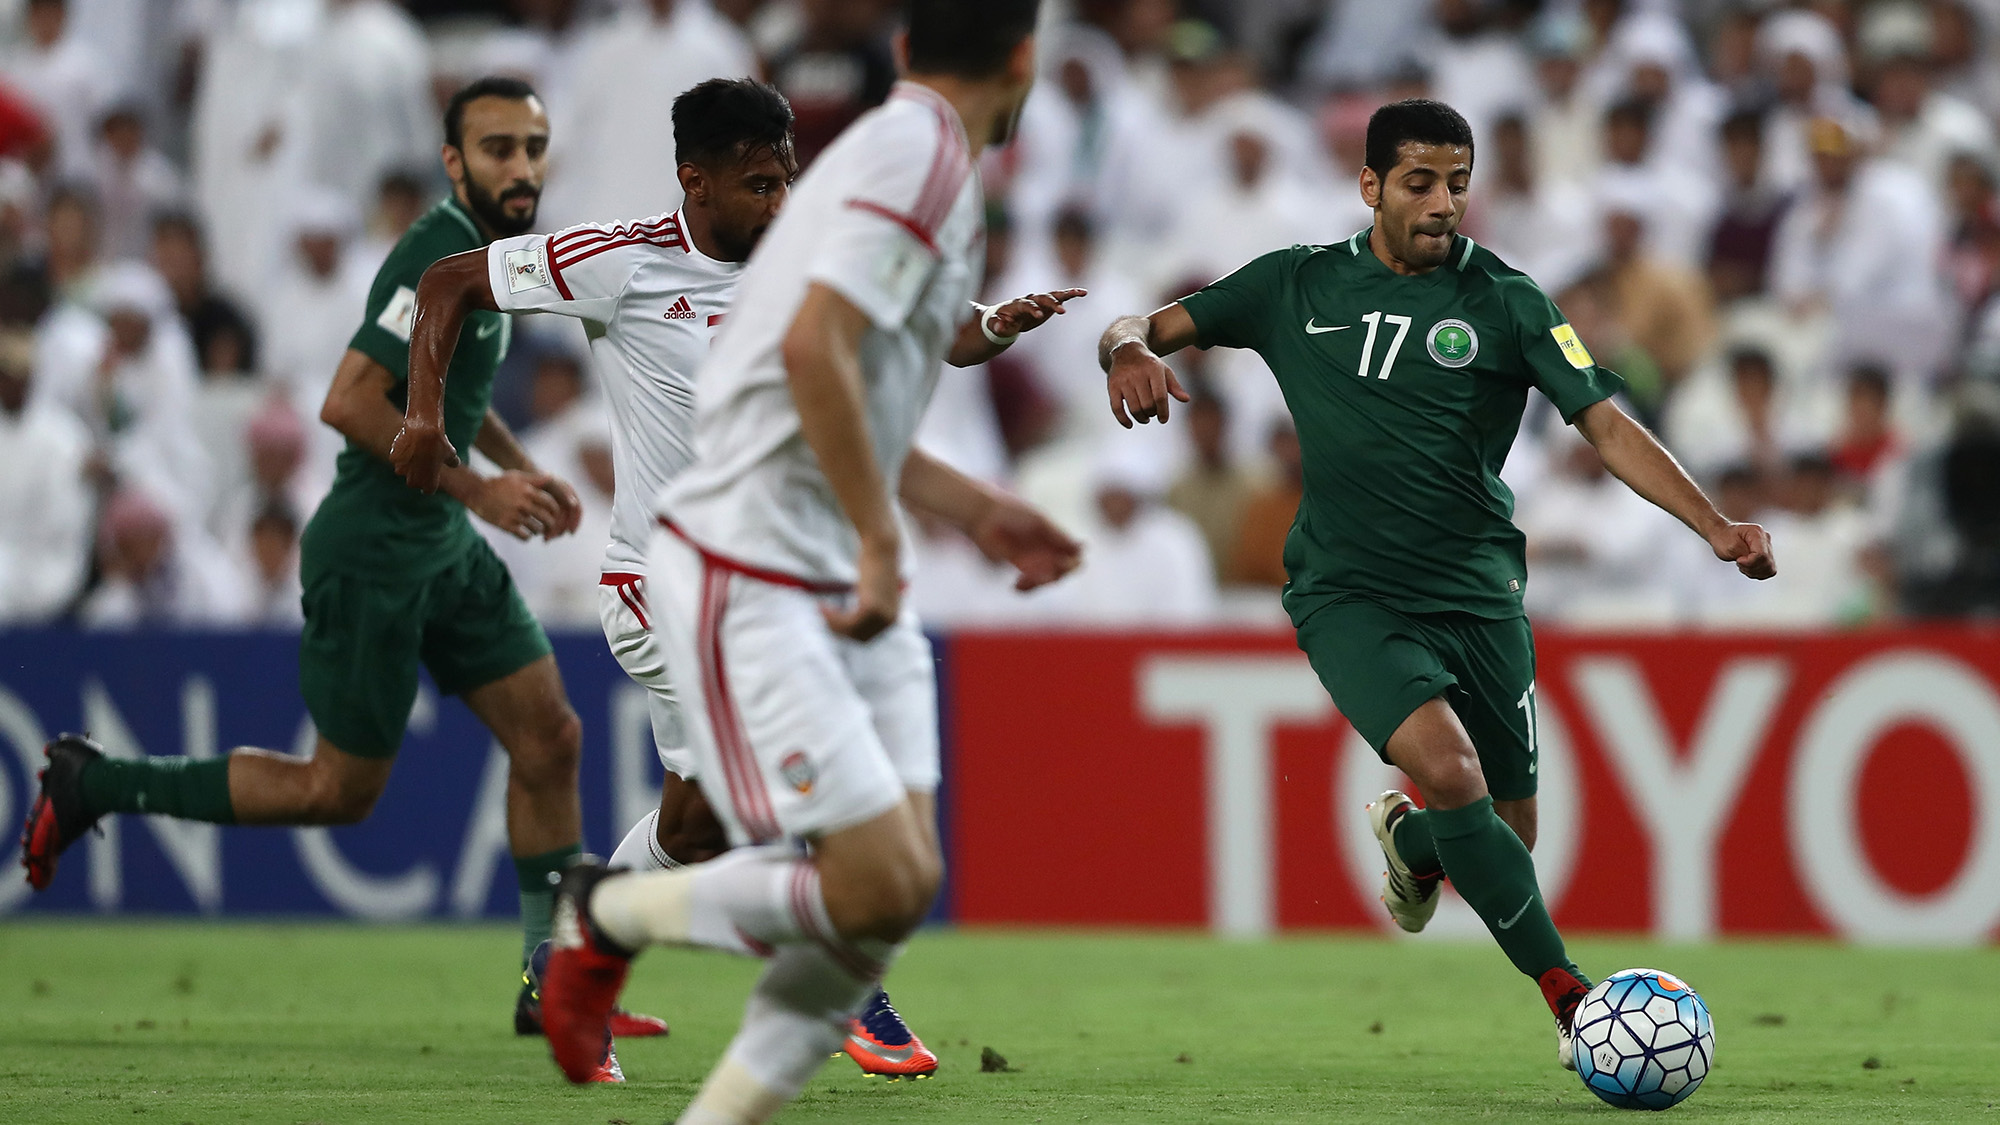 Saudi coach bemoans blow to World Cup hopes